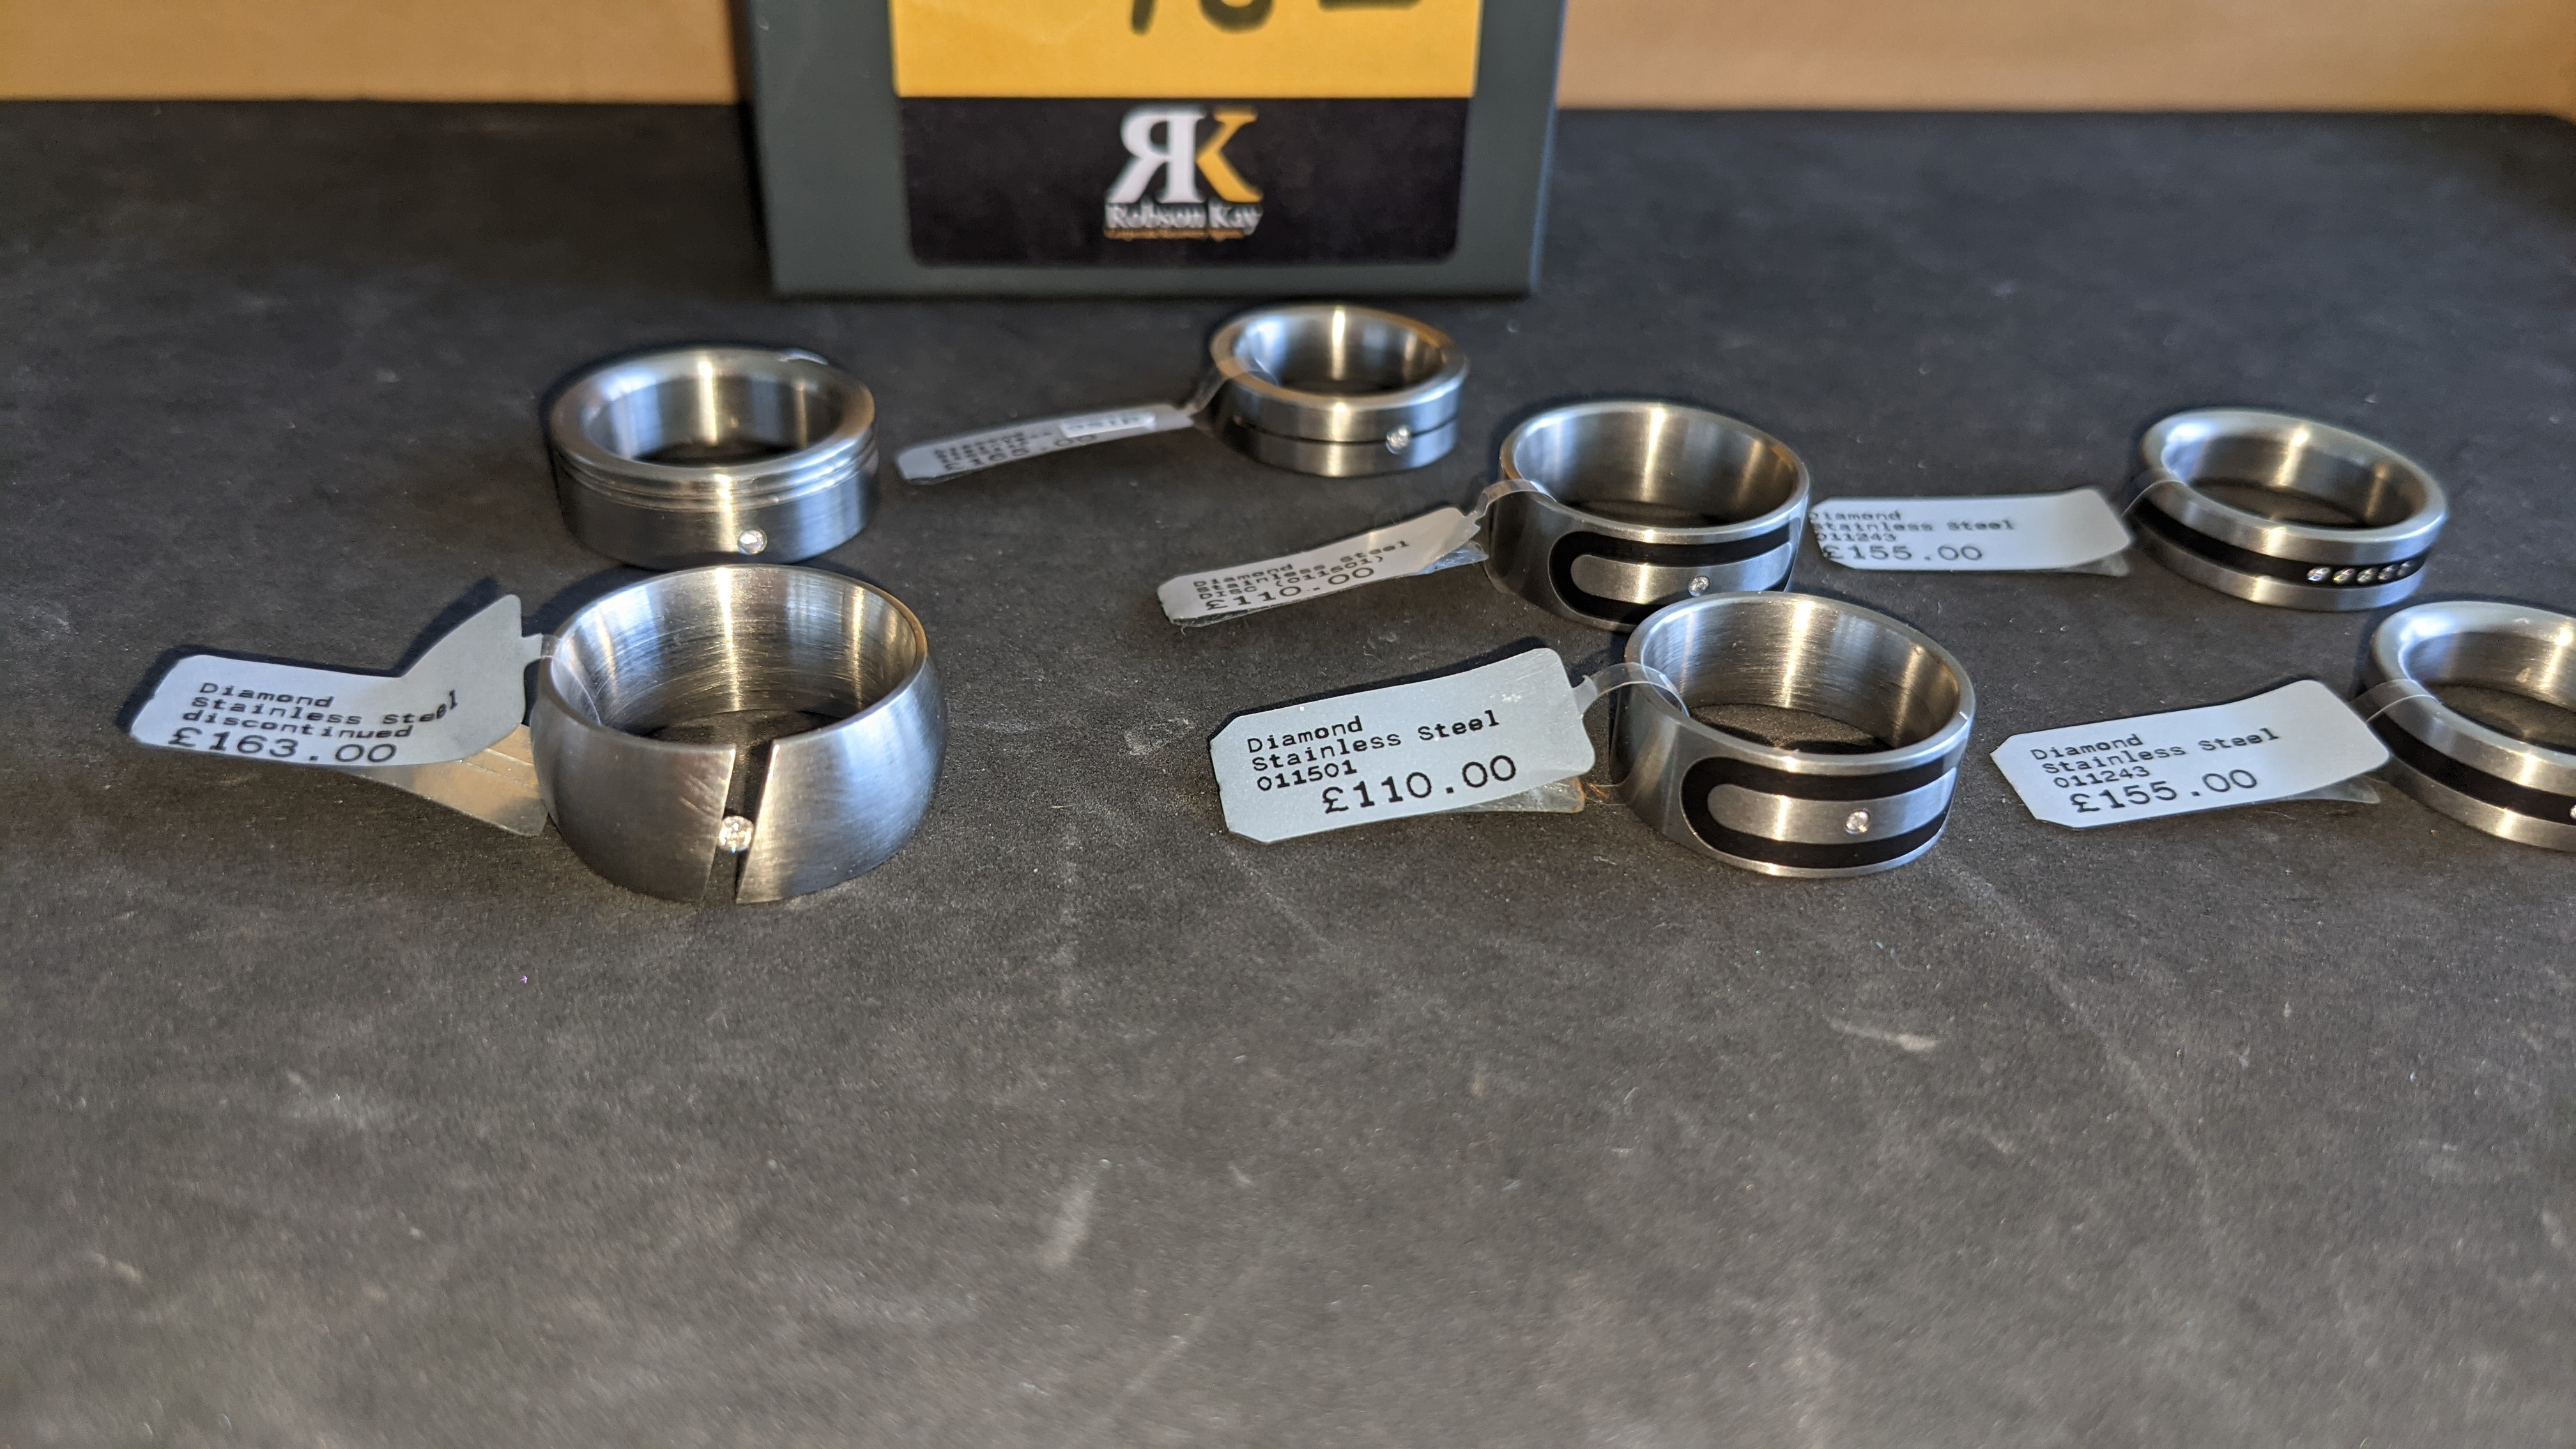 7 off assorted stainless steel & diamond rings. RRPs from £110 - £170. Total RRP £1,028 - Image 4 of 12